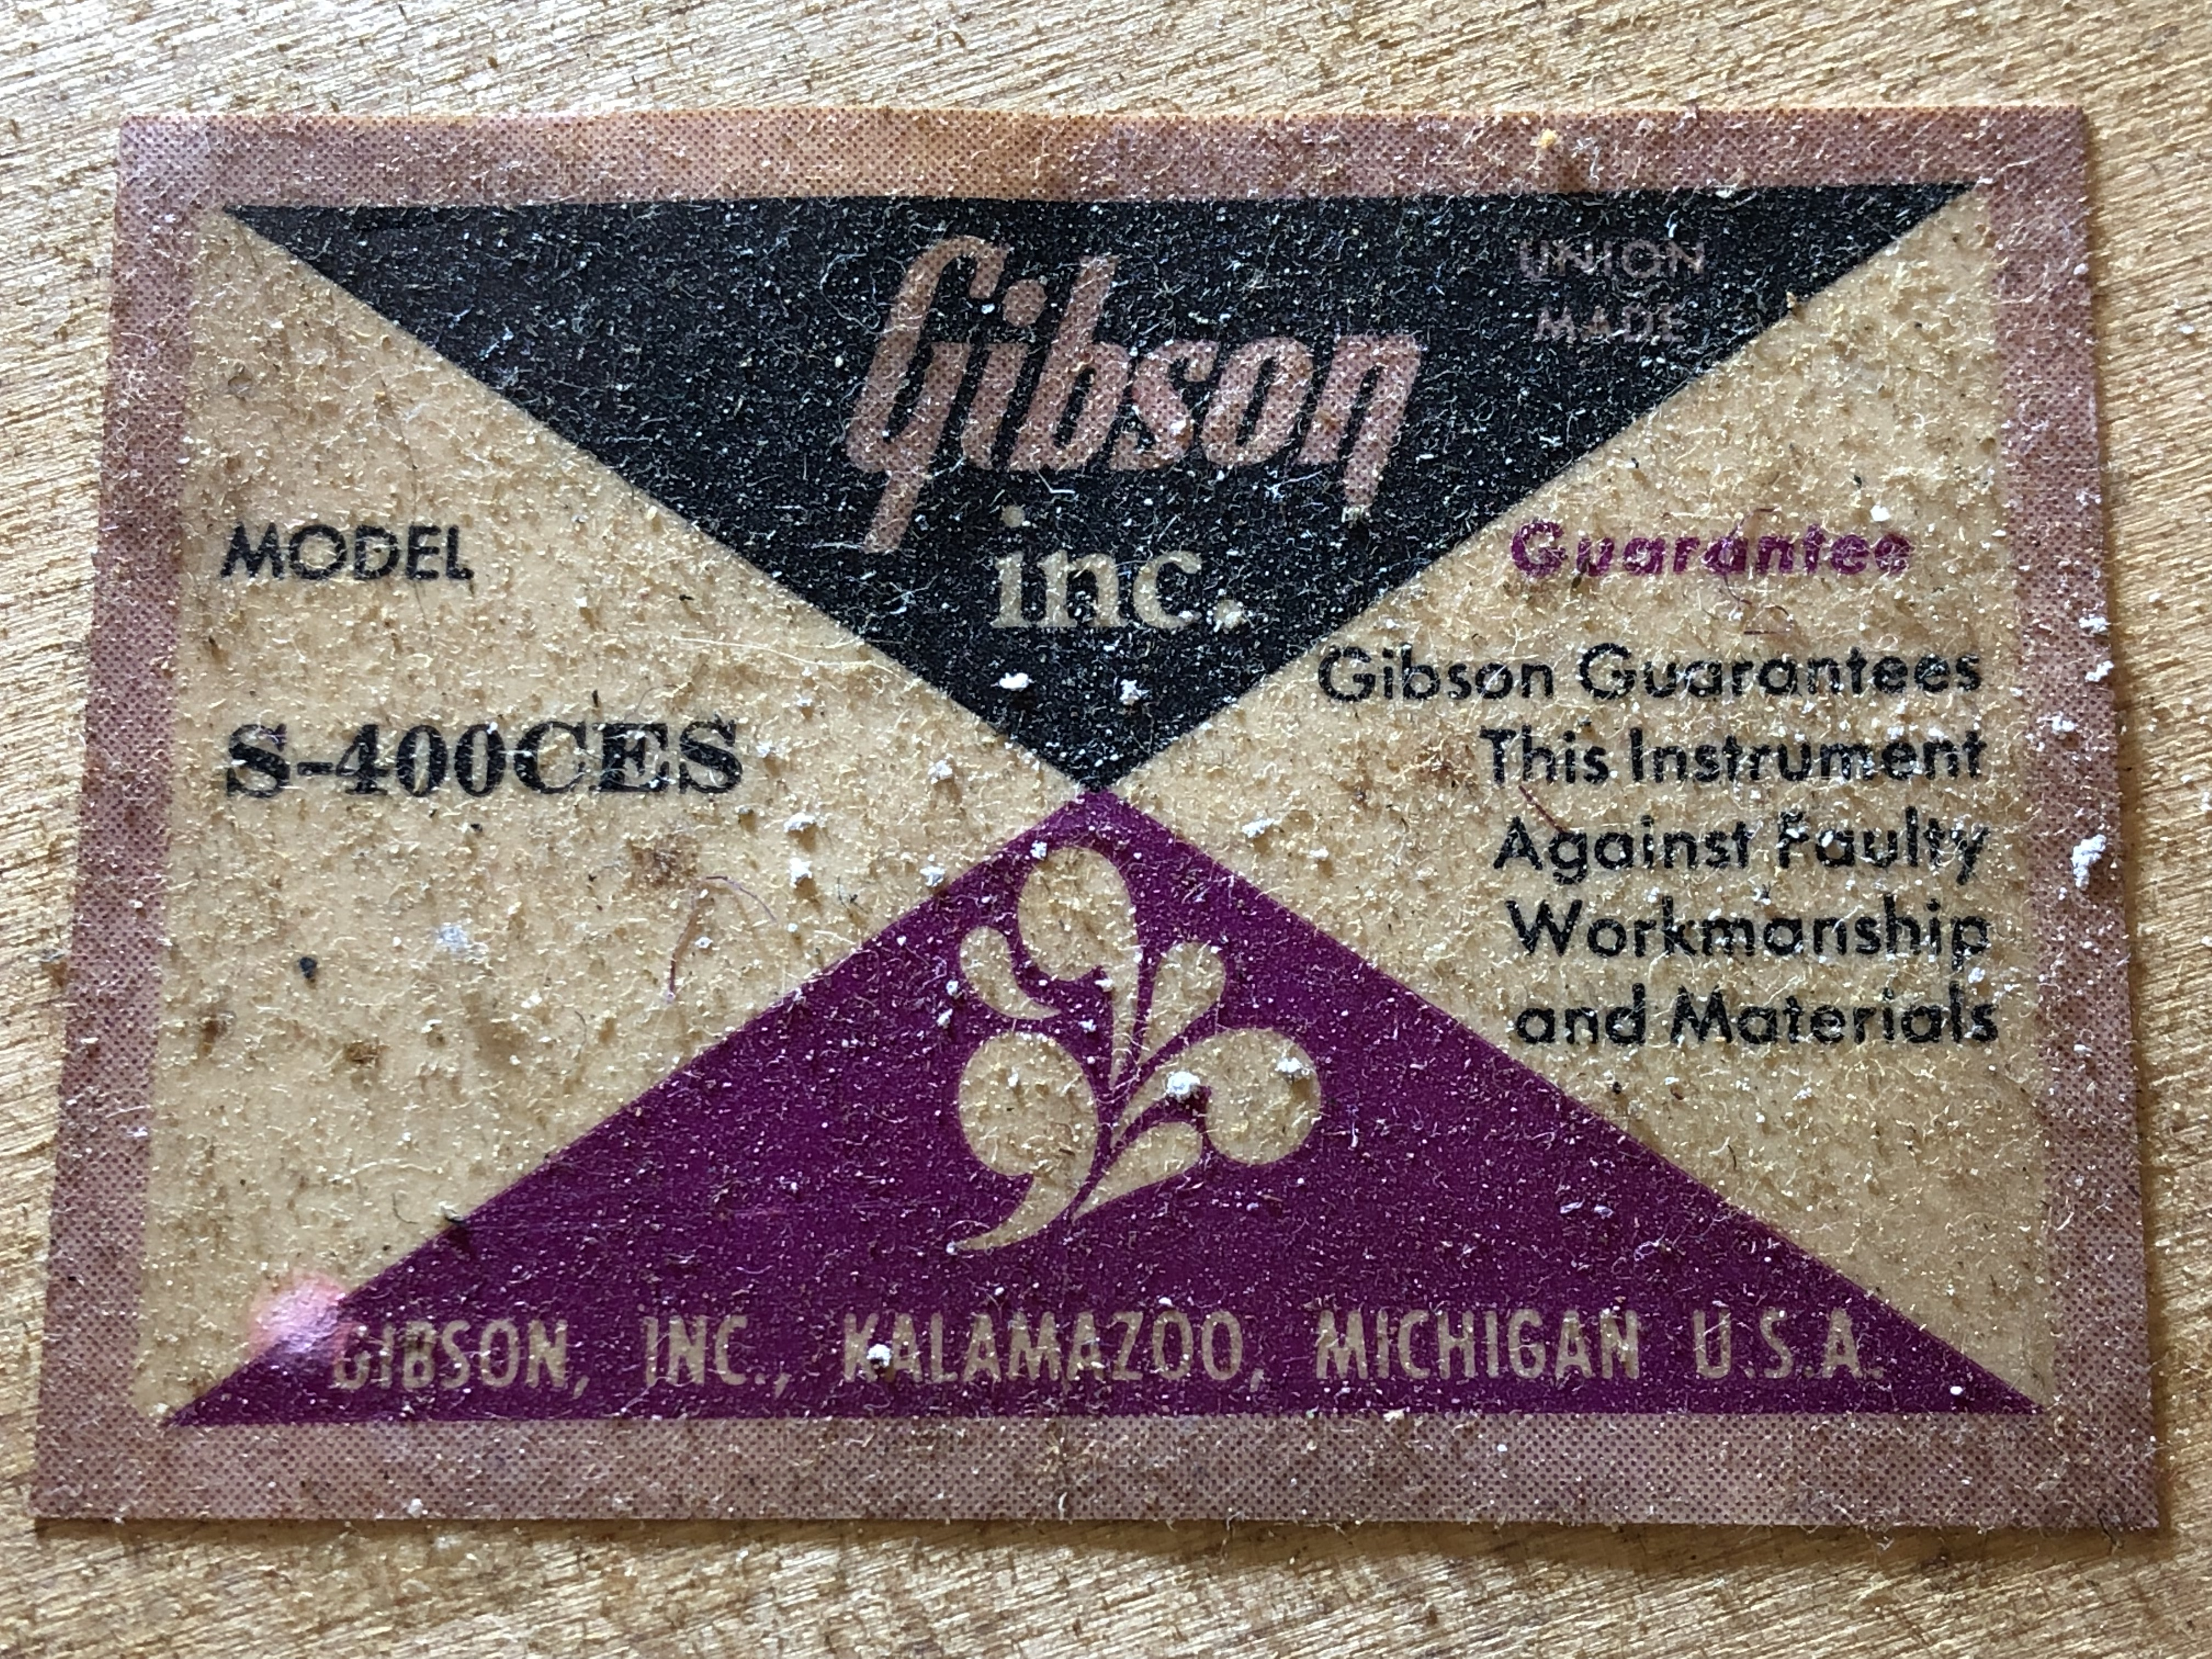 img/vintage/3393/Gibson-Super-400-CES-1974-023.jpg